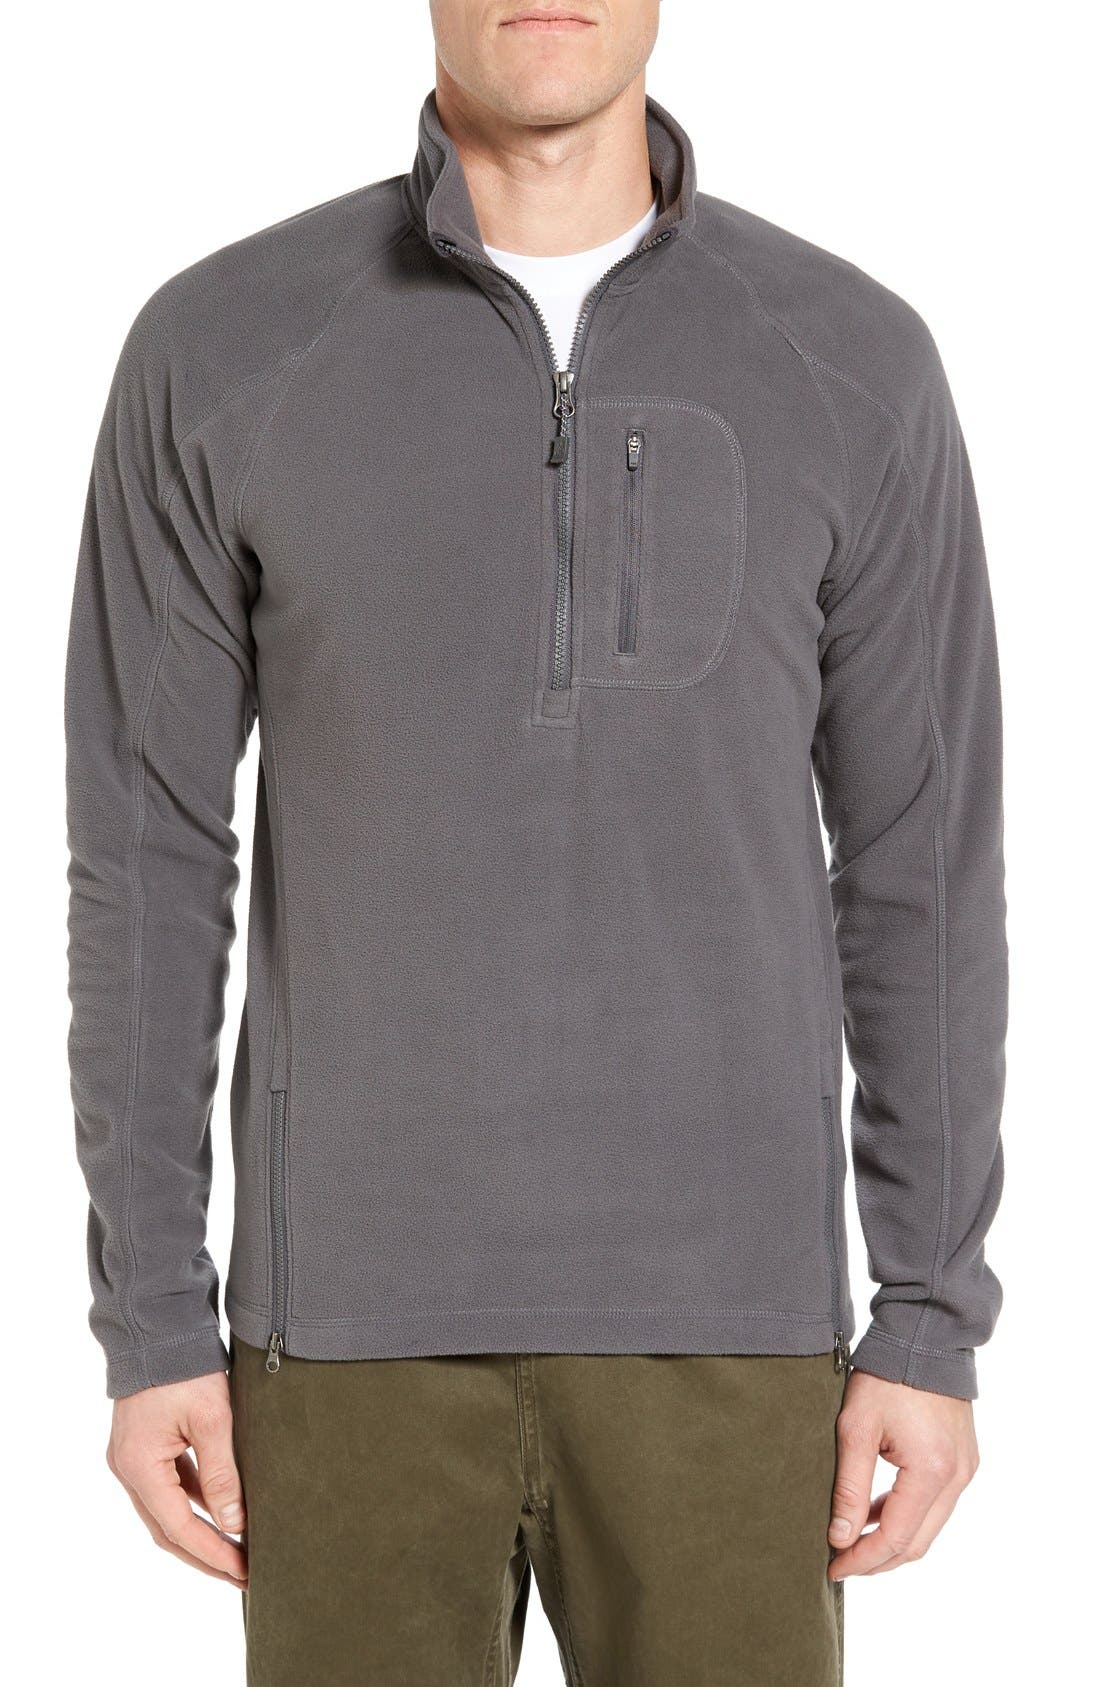 Main Image - Gramicci Utility Quarter Zip Fleece Sweater